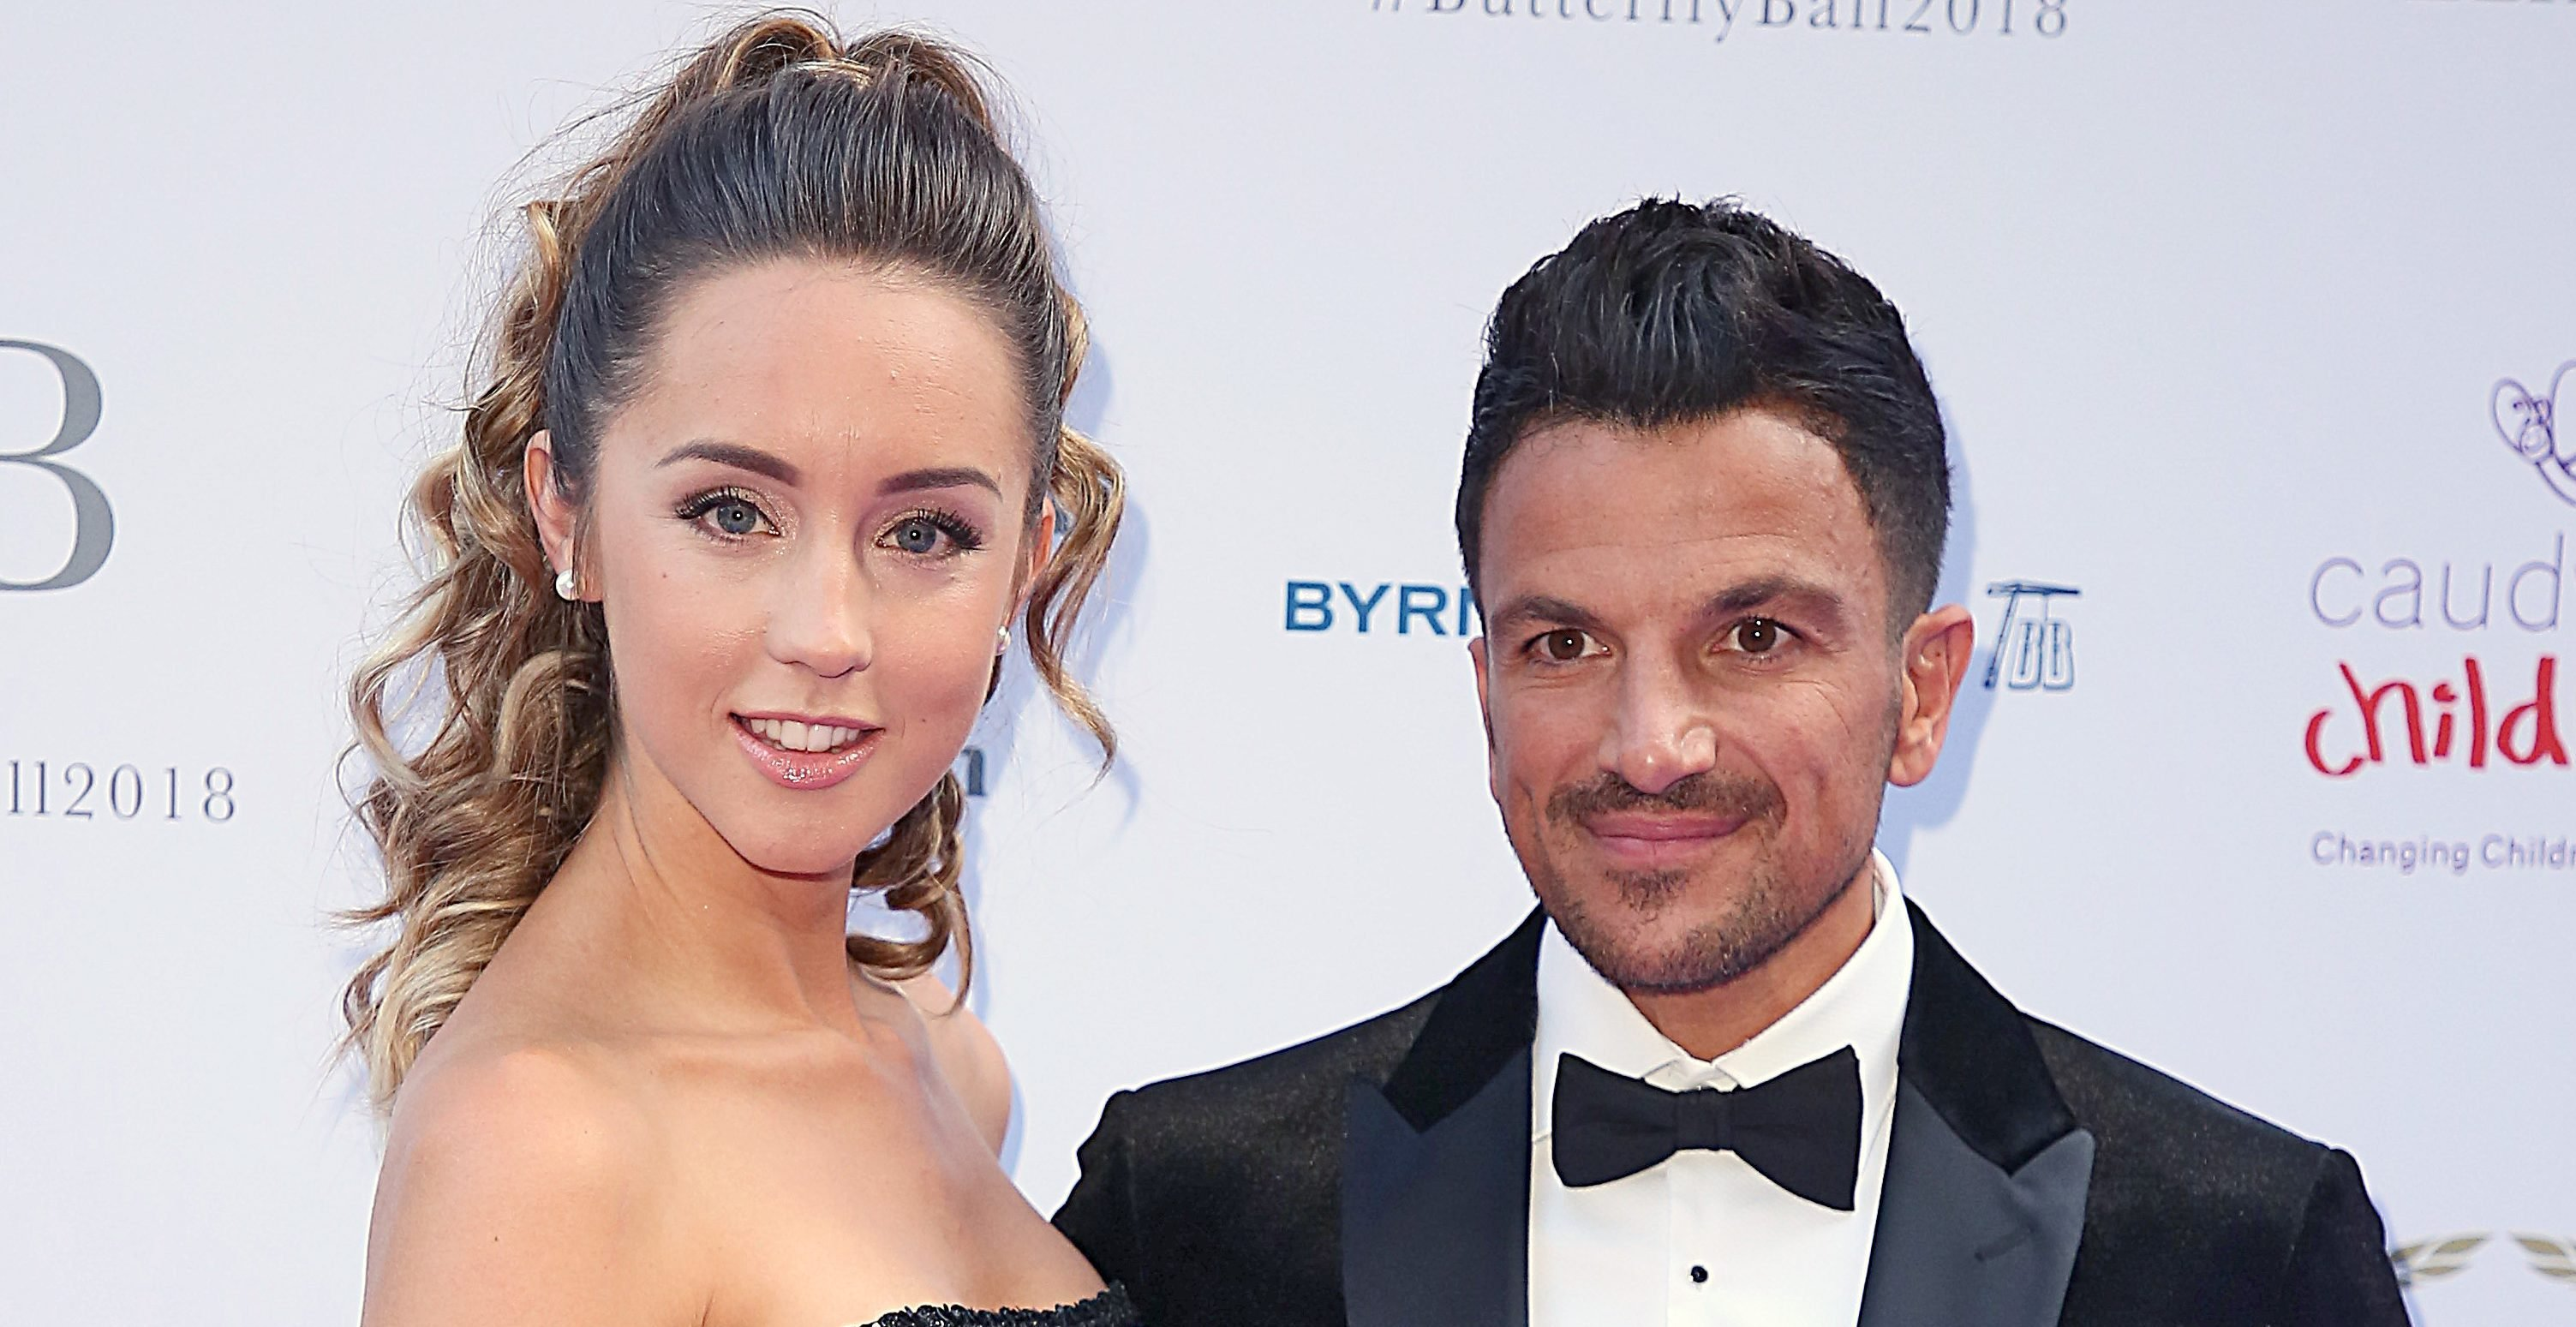 Peter Andre says finding time for wife Emily is 'difficult'